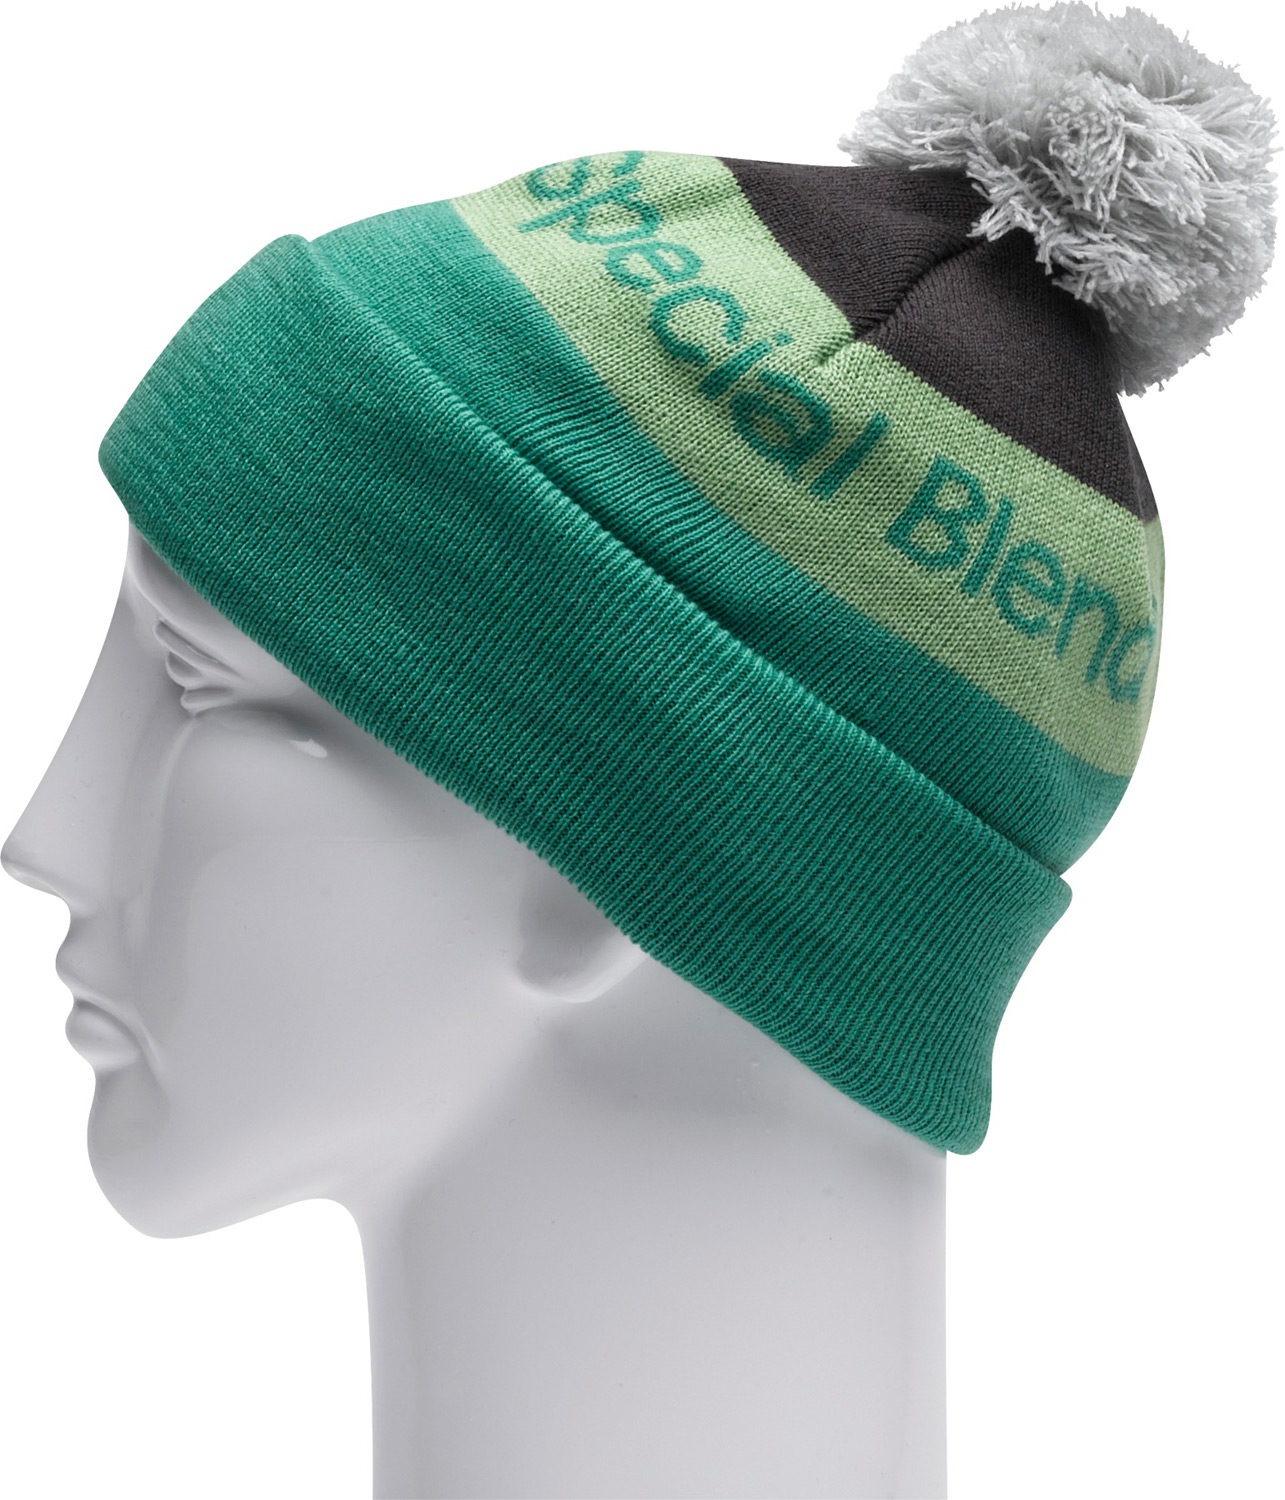 "Key Features of the Special Blend Townie Beanie: Machine knit 100% soft acrylic 11"" tall Jacquard stripe with pom One size fits all - $25.95"